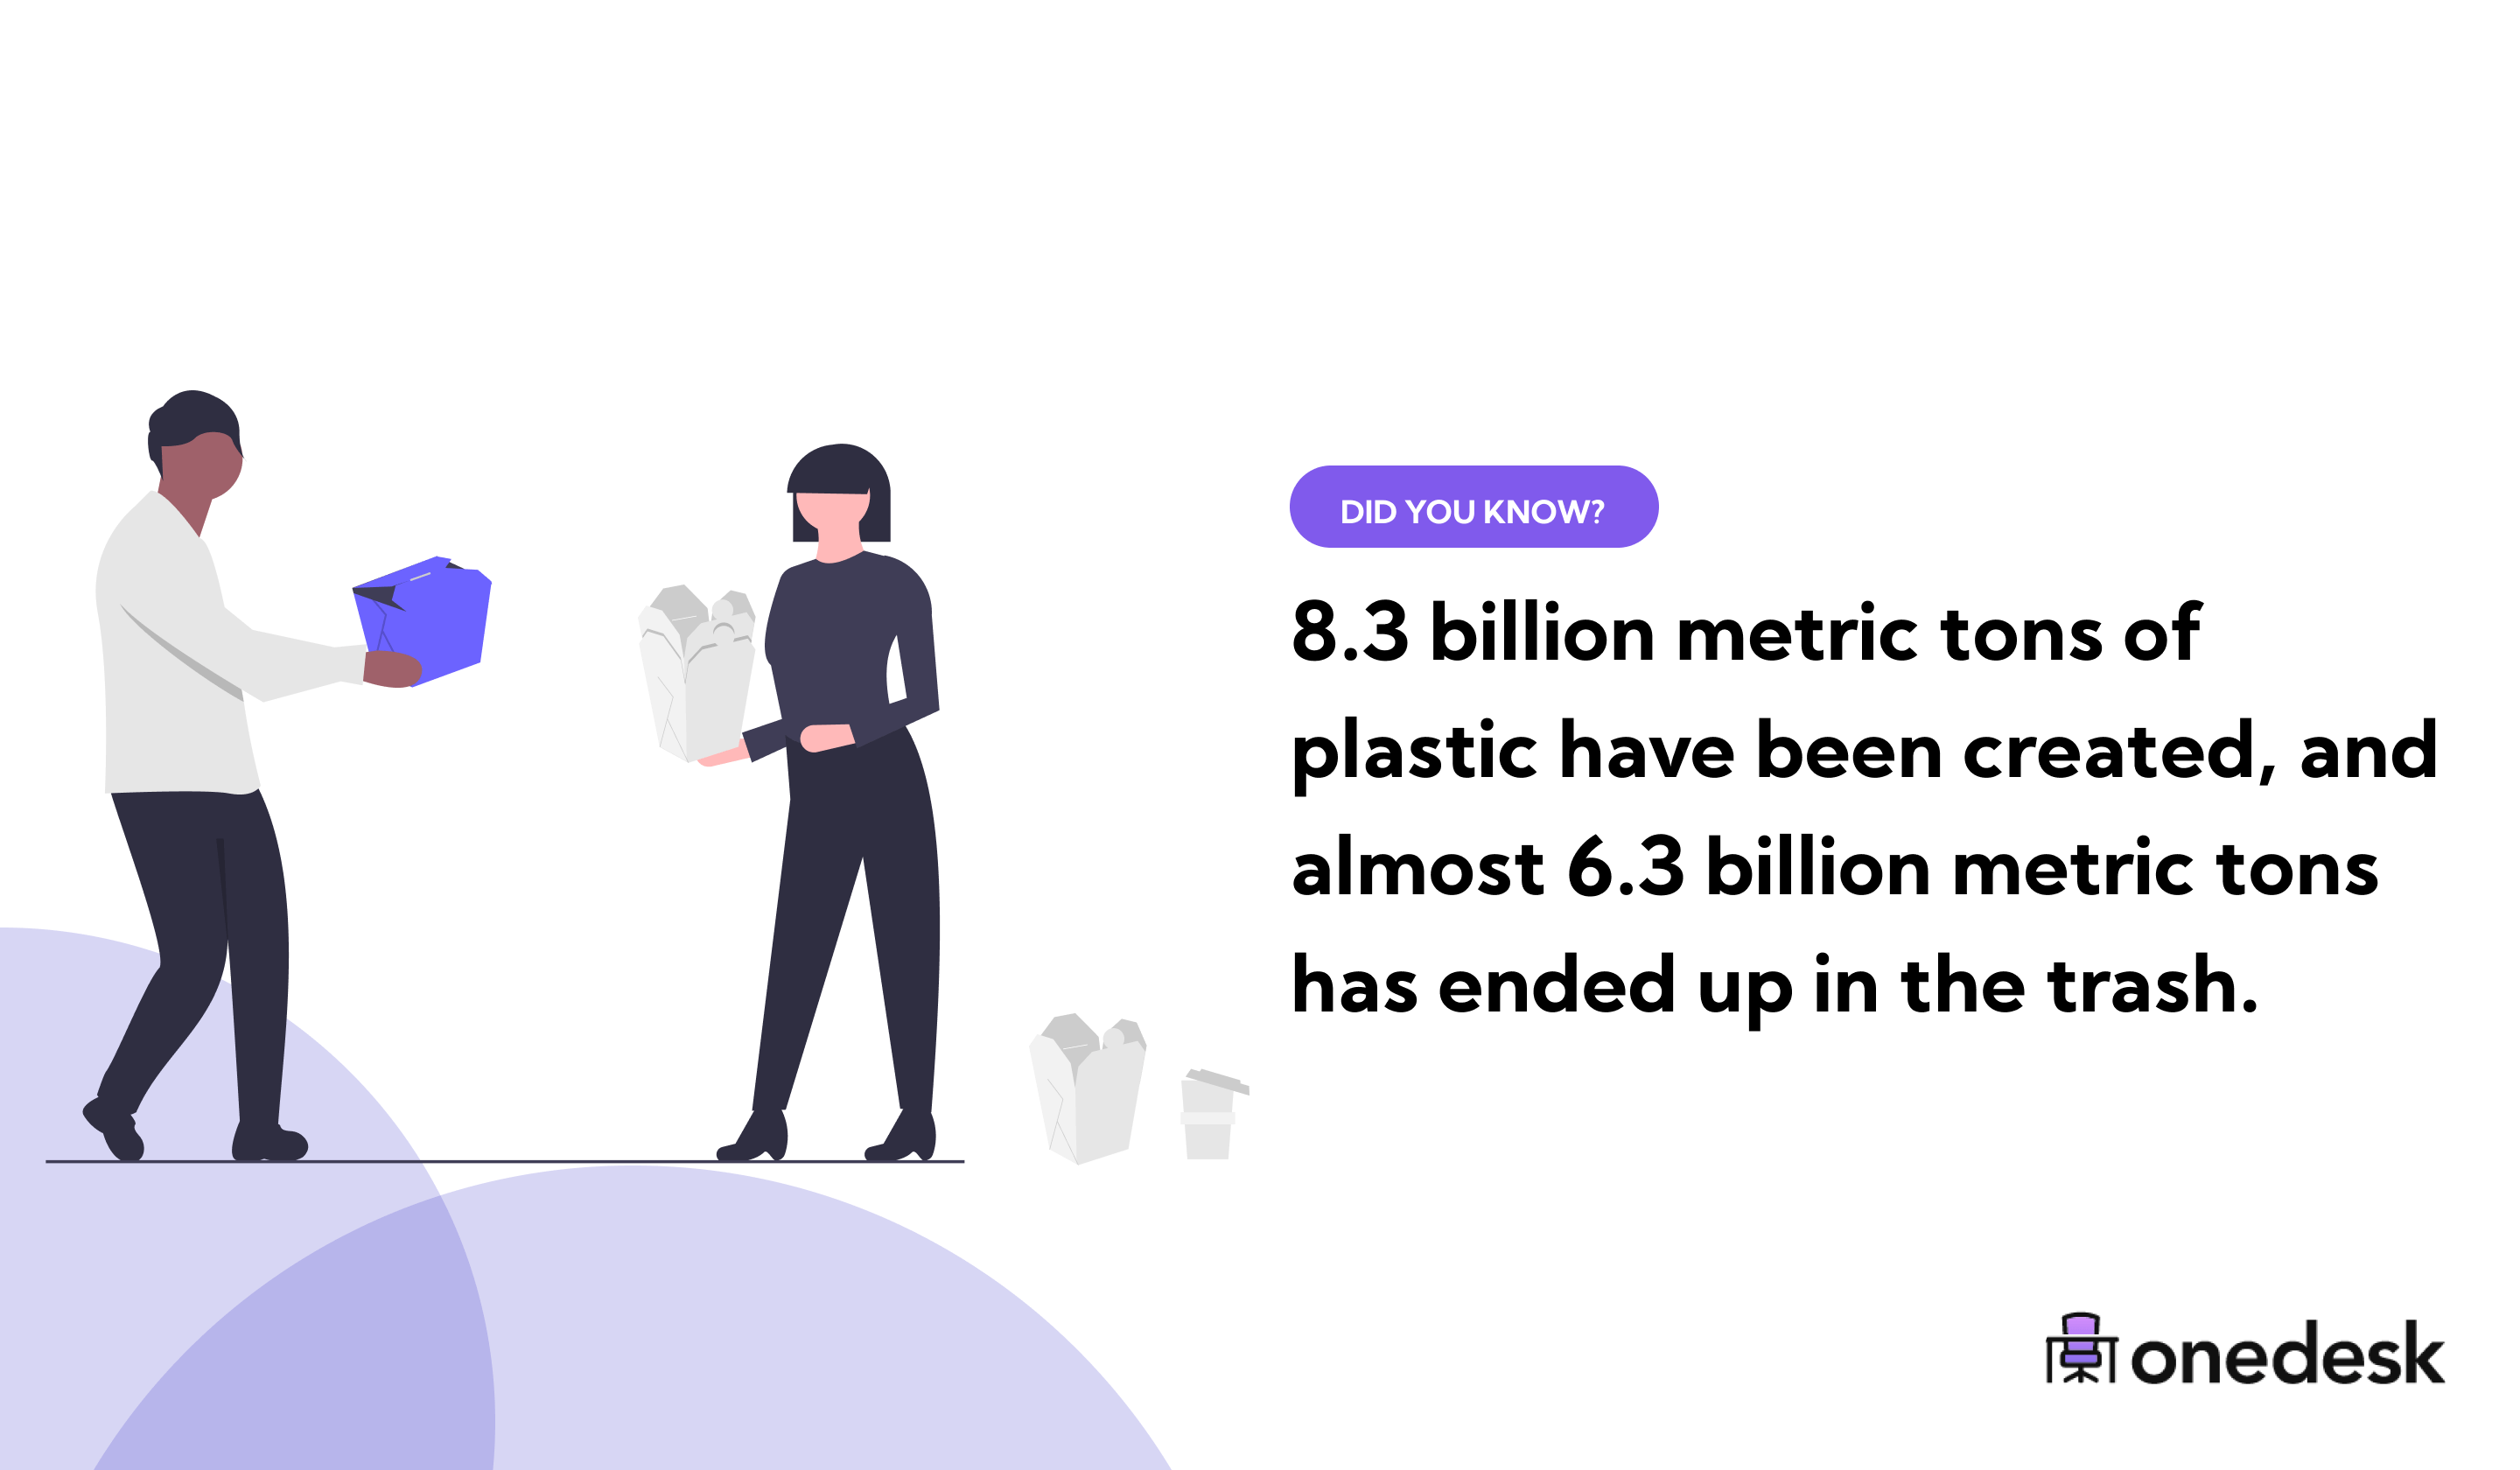 Percent of waste in the world that doesn't get recycled